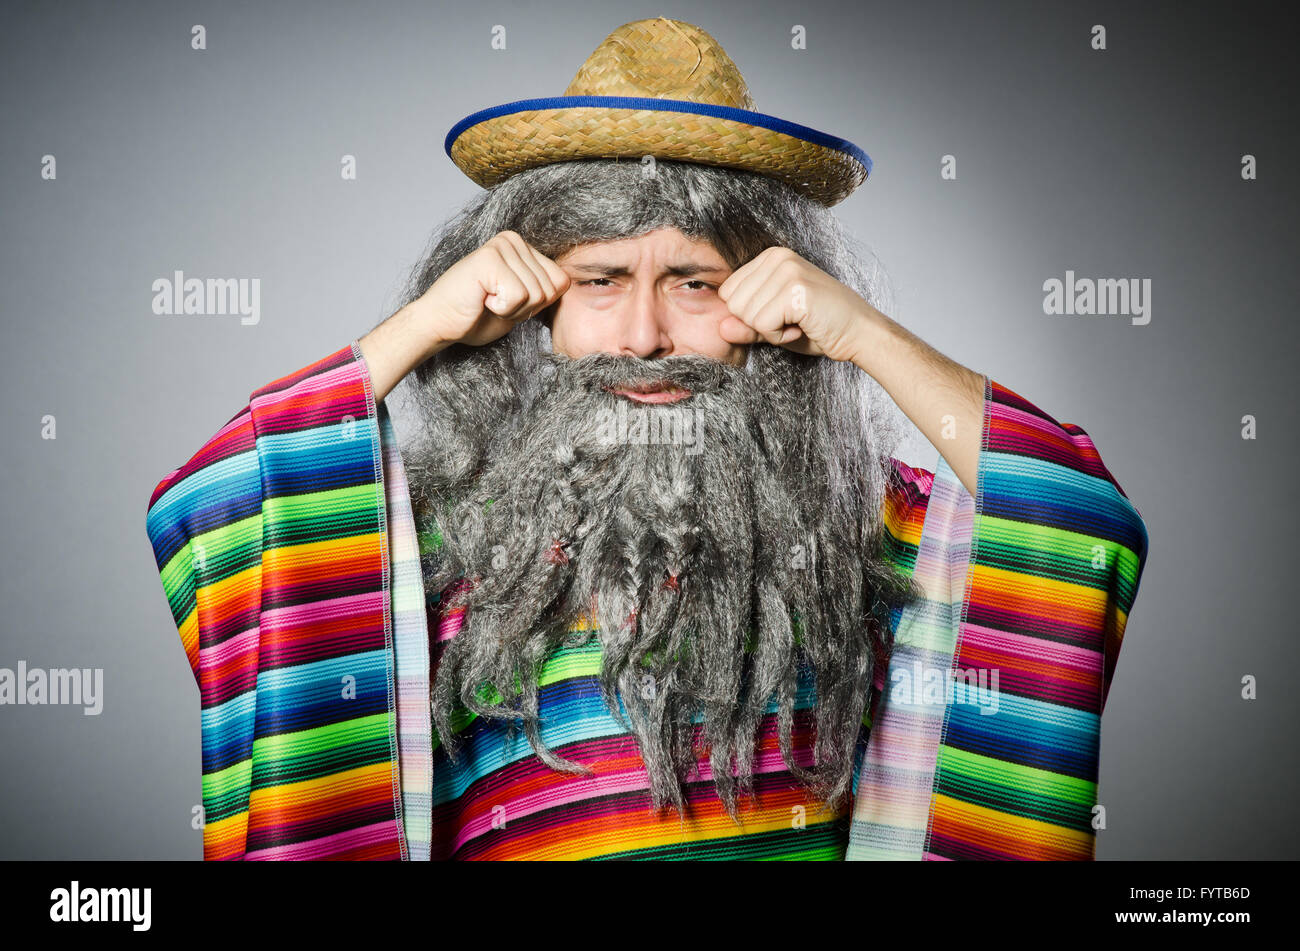 Person wearing sombrero hat in funny concept - Stock Image